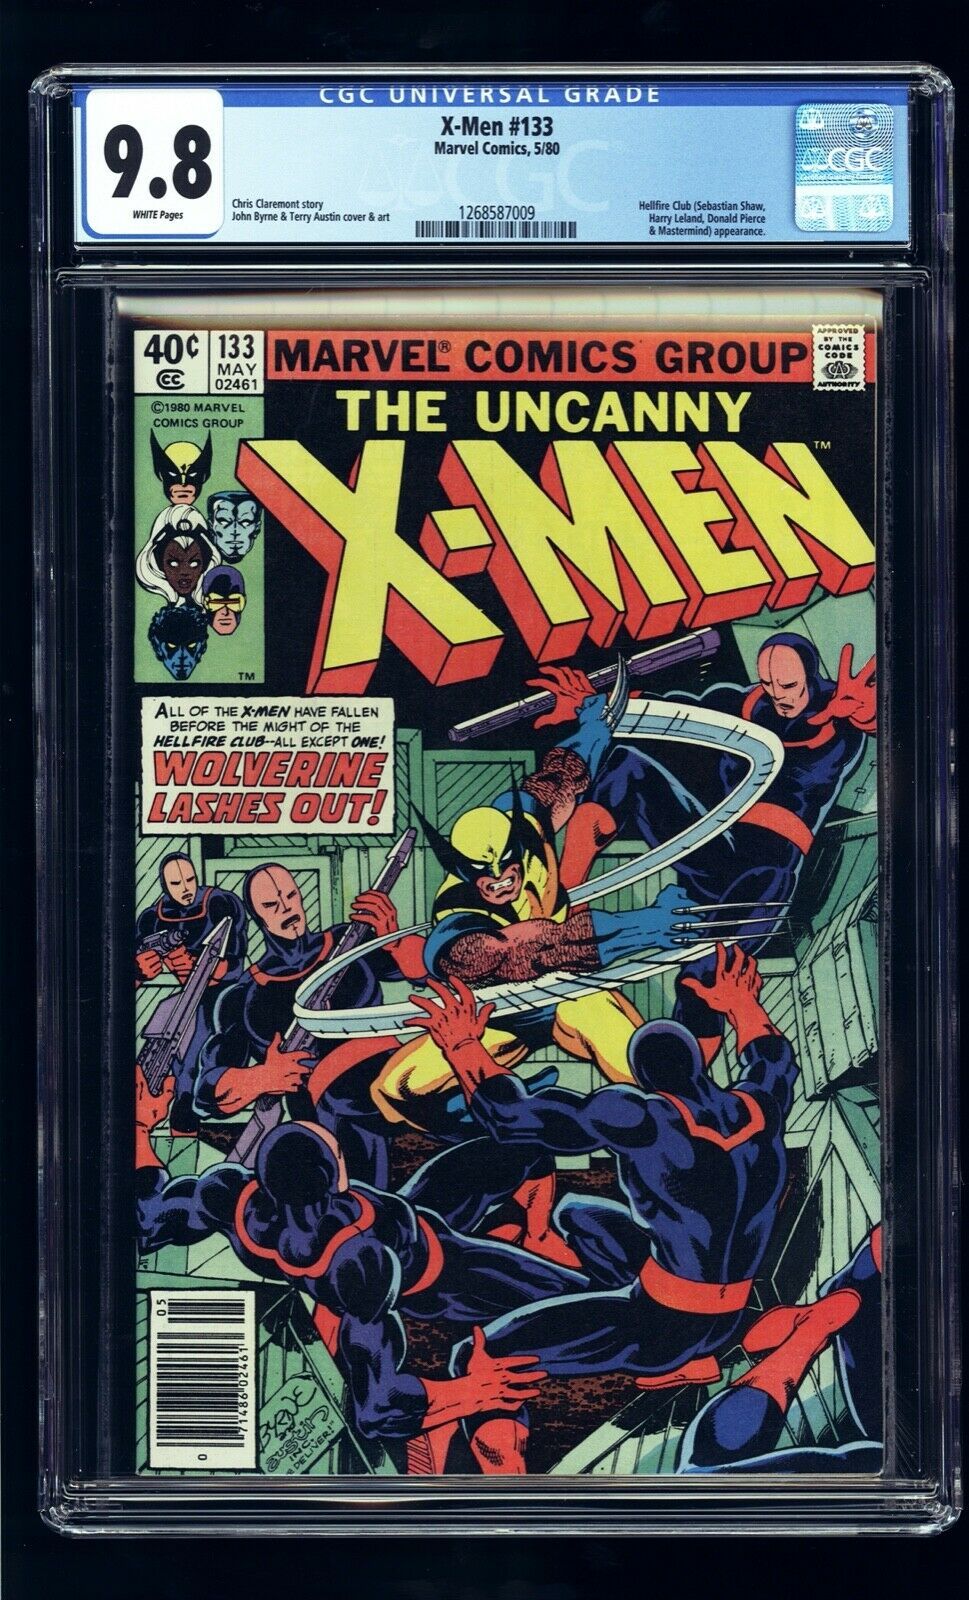 1980 UNCANNY X-MEN #133 CGC 9.8 WP NEWSSTAND 1ST WOLVERINE SOLO STORY